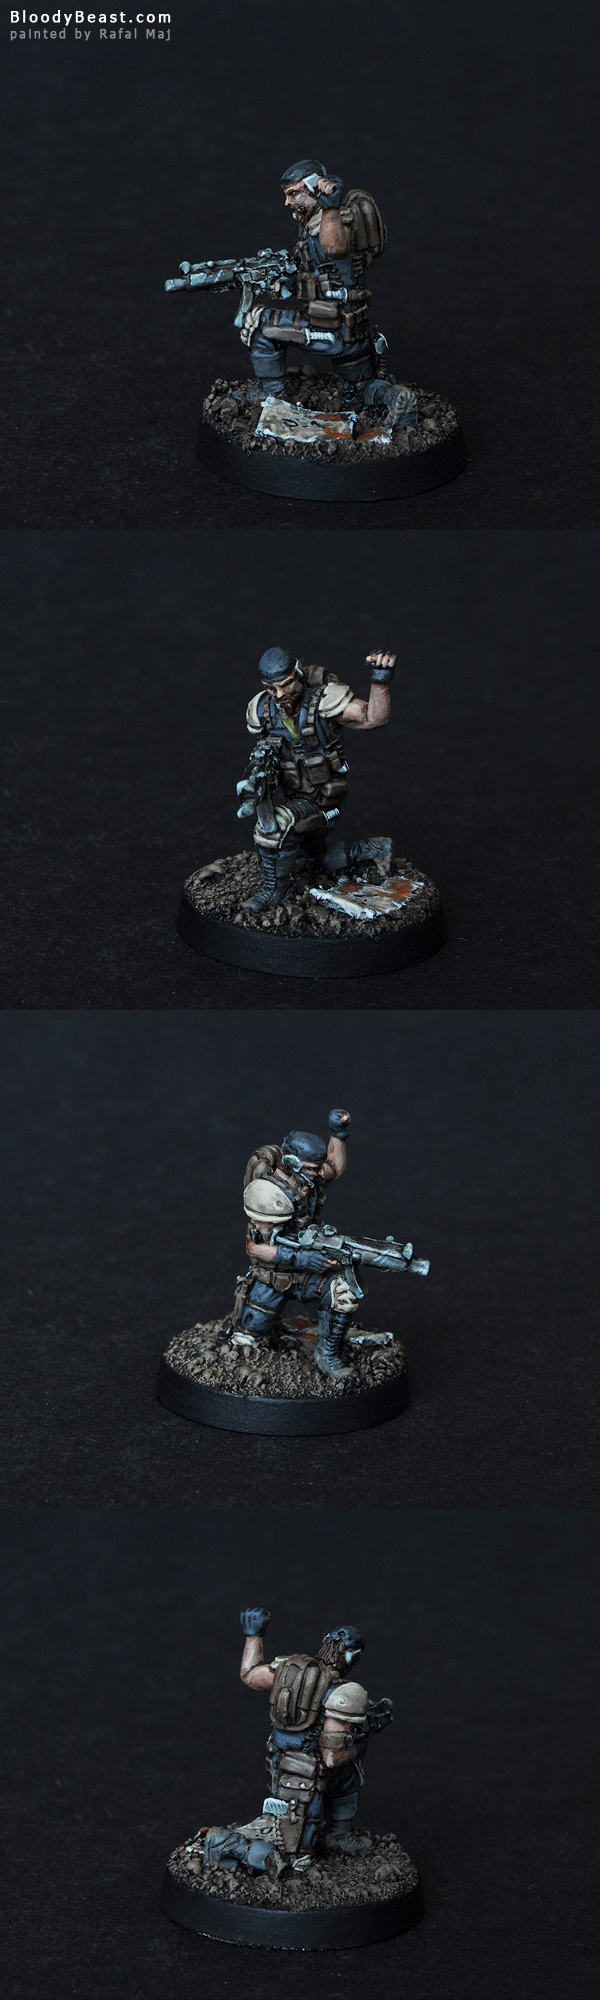 Scout painted by Rafal Maj (BloodyBeast.com)